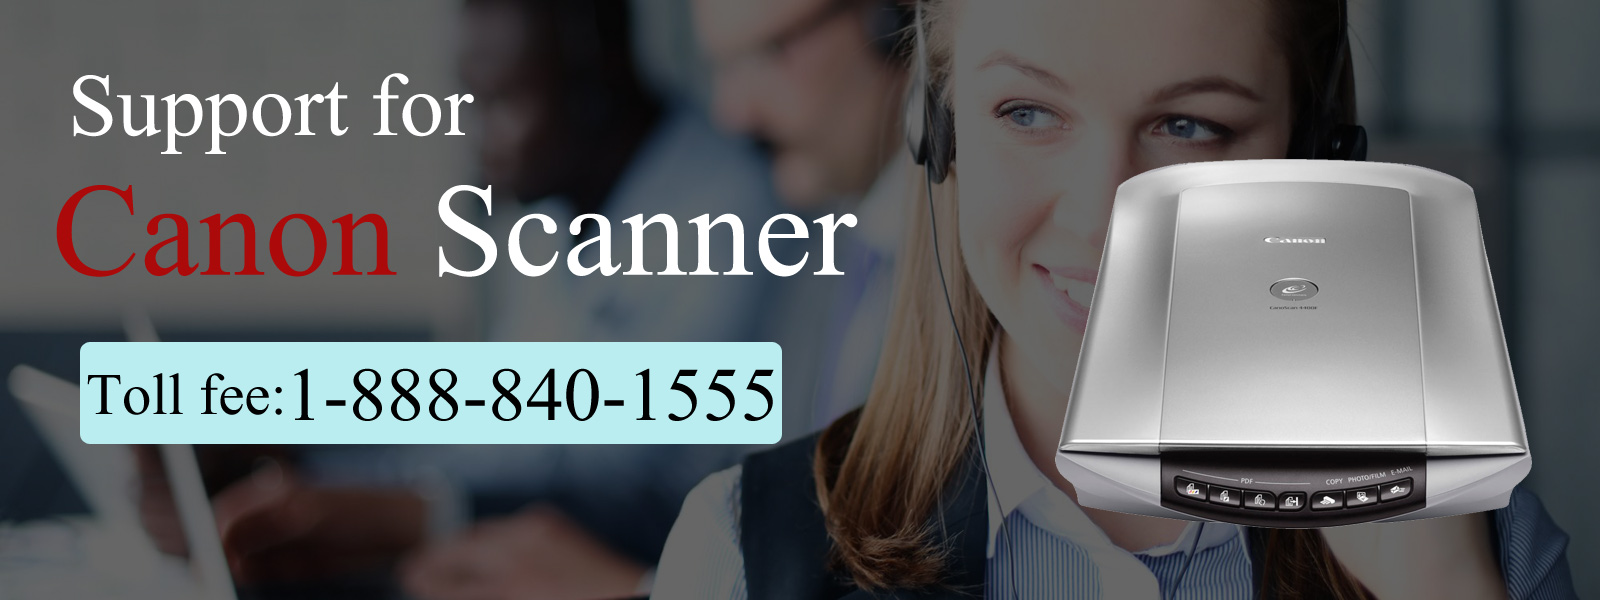 Canon Scanner Support Phone Number